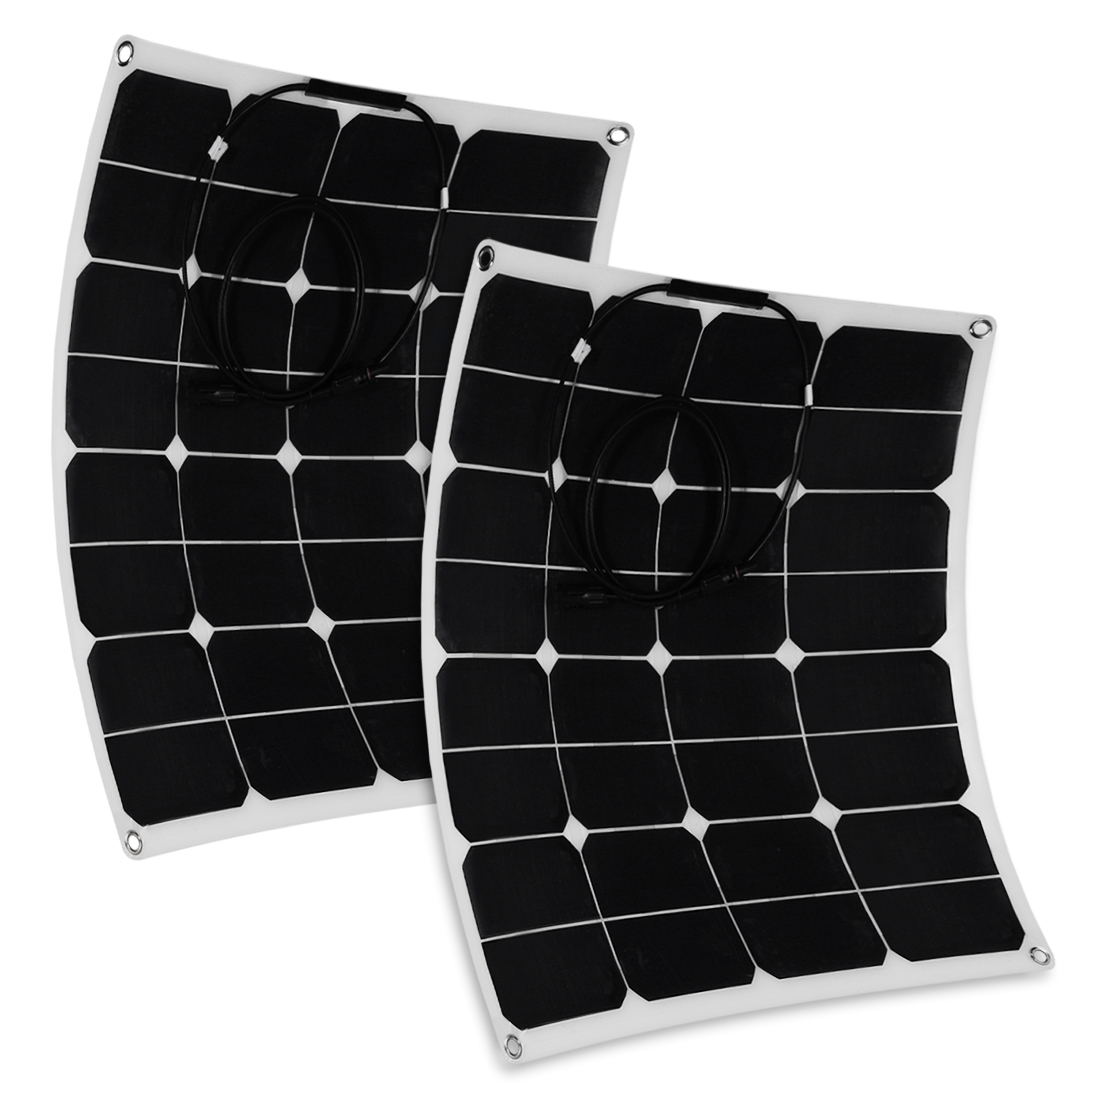 50W Solar Panel Monocrystalline Off Grid 12V RV Marine Boat with MC4 Connector - image 7 de 7